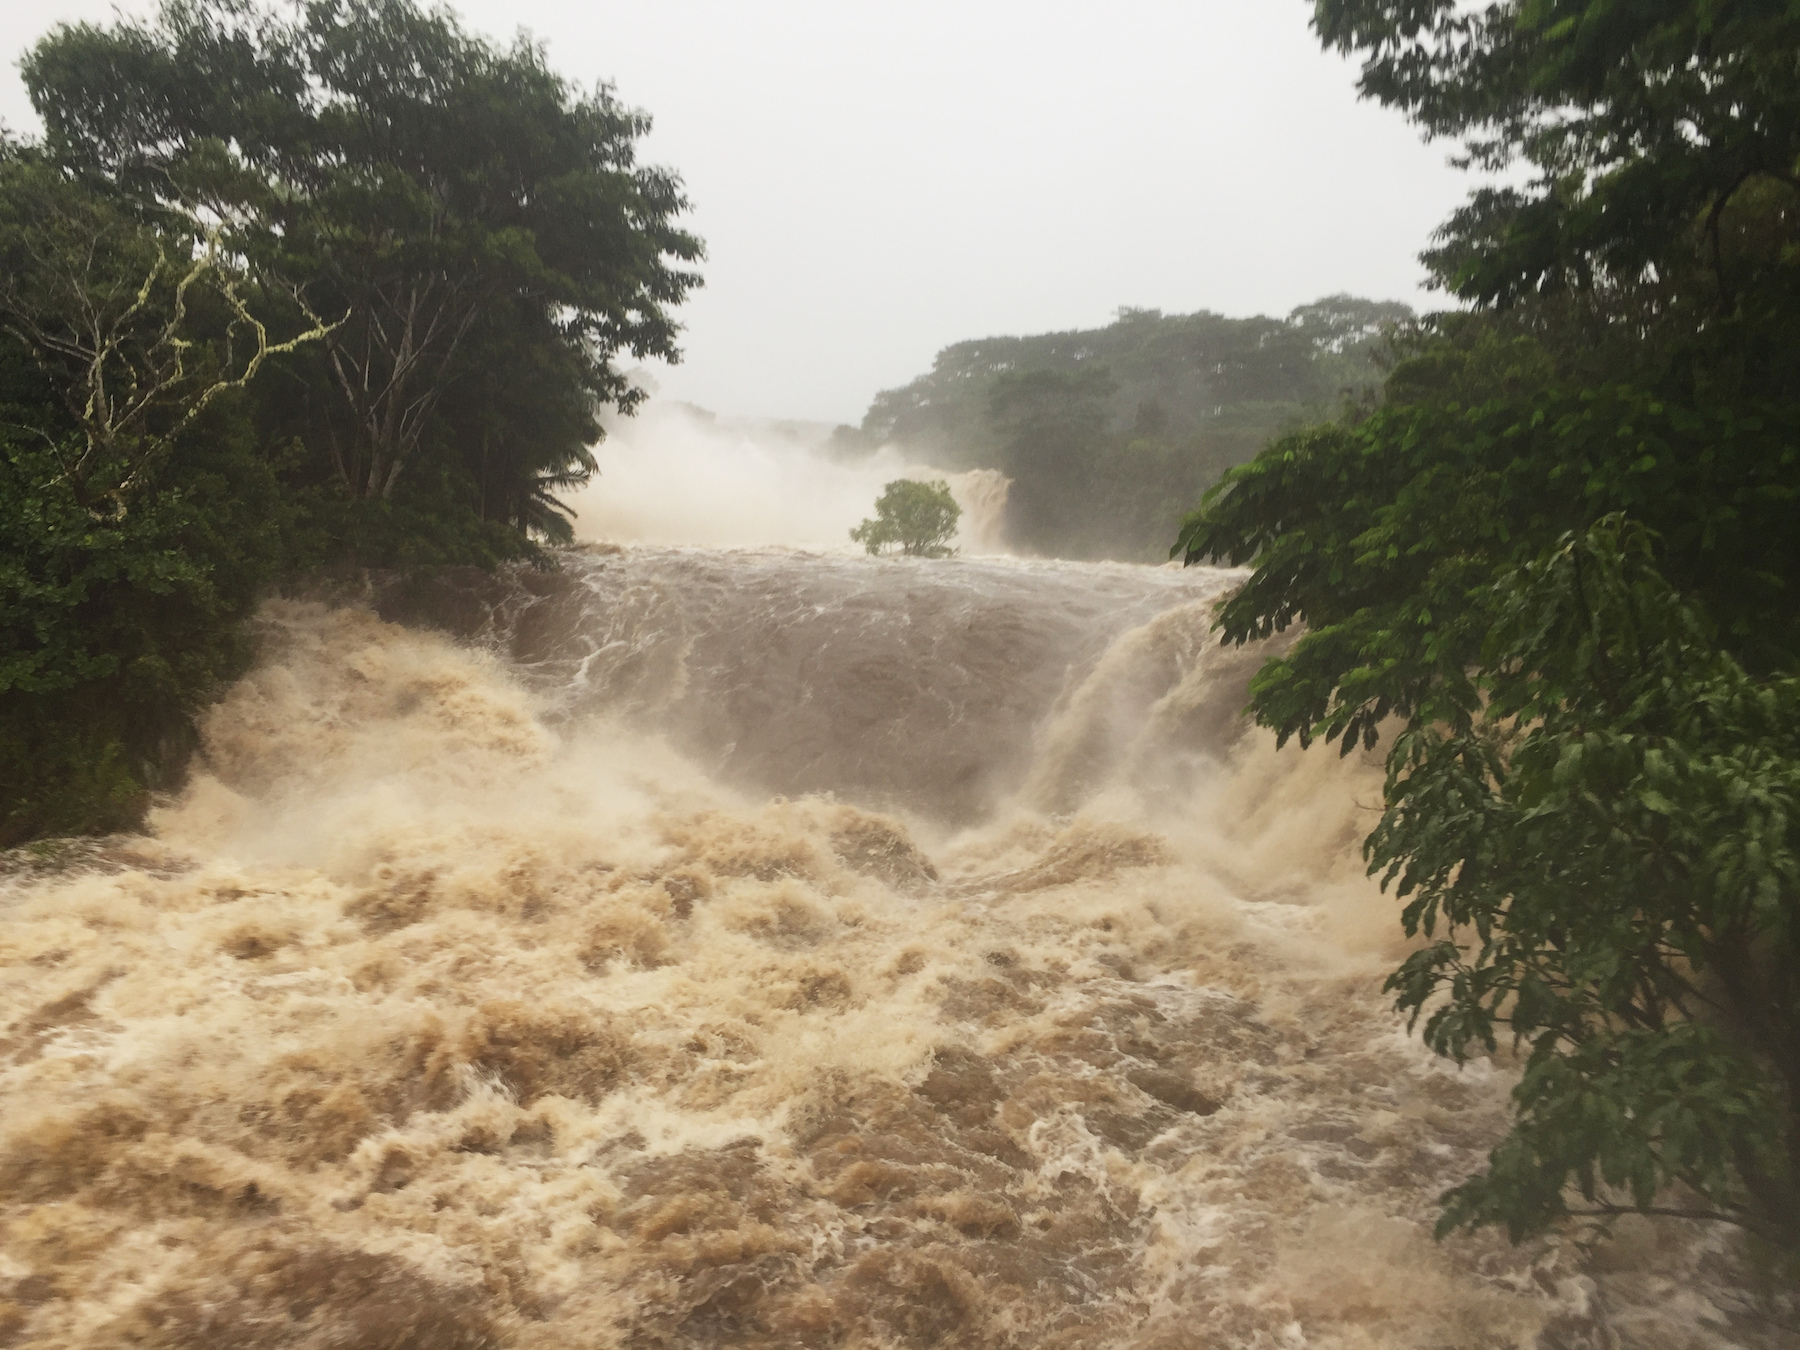 <div class='meta'><div class='origin-logo' data-origin='AP'></div><span class='caption-text' data-credit='by Jessica Henricks via AP'>This photo provided by Jessica Henricks shows flooding Thursday, August 23, 2018, Wailuku River near Hilo, Hawaii.</span></div>